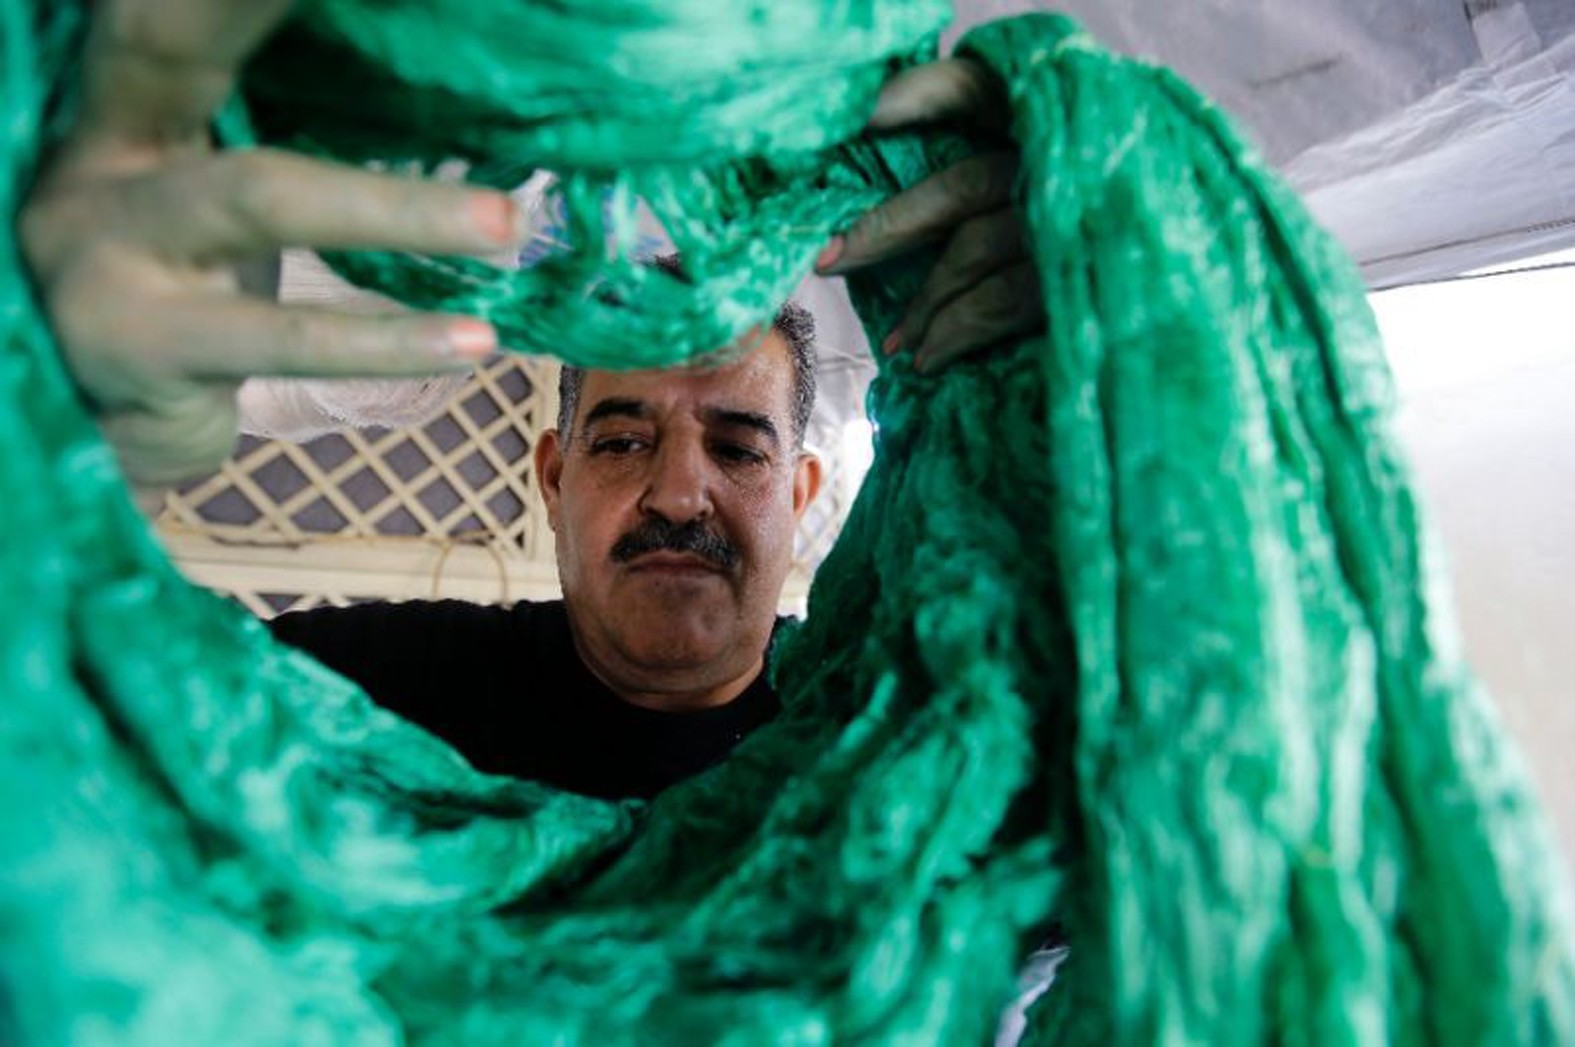 Mohammad al-Rihawi sometimes works just one day a week at his silk dyeing workshop because of low demand.